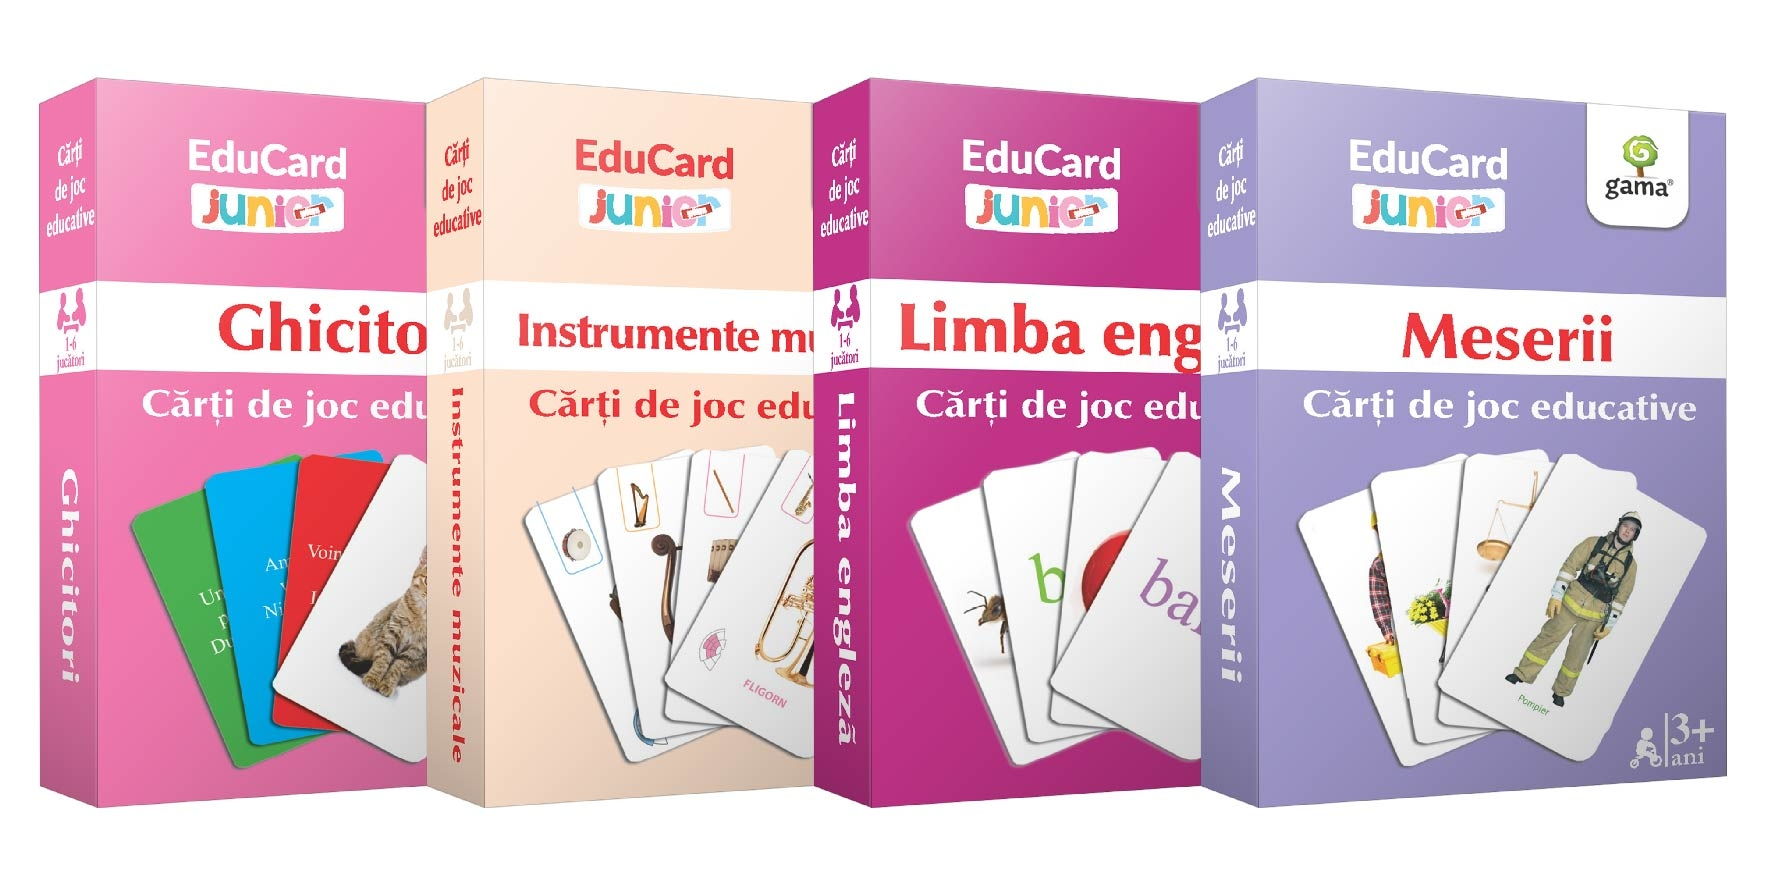 EduCard Junior Plus